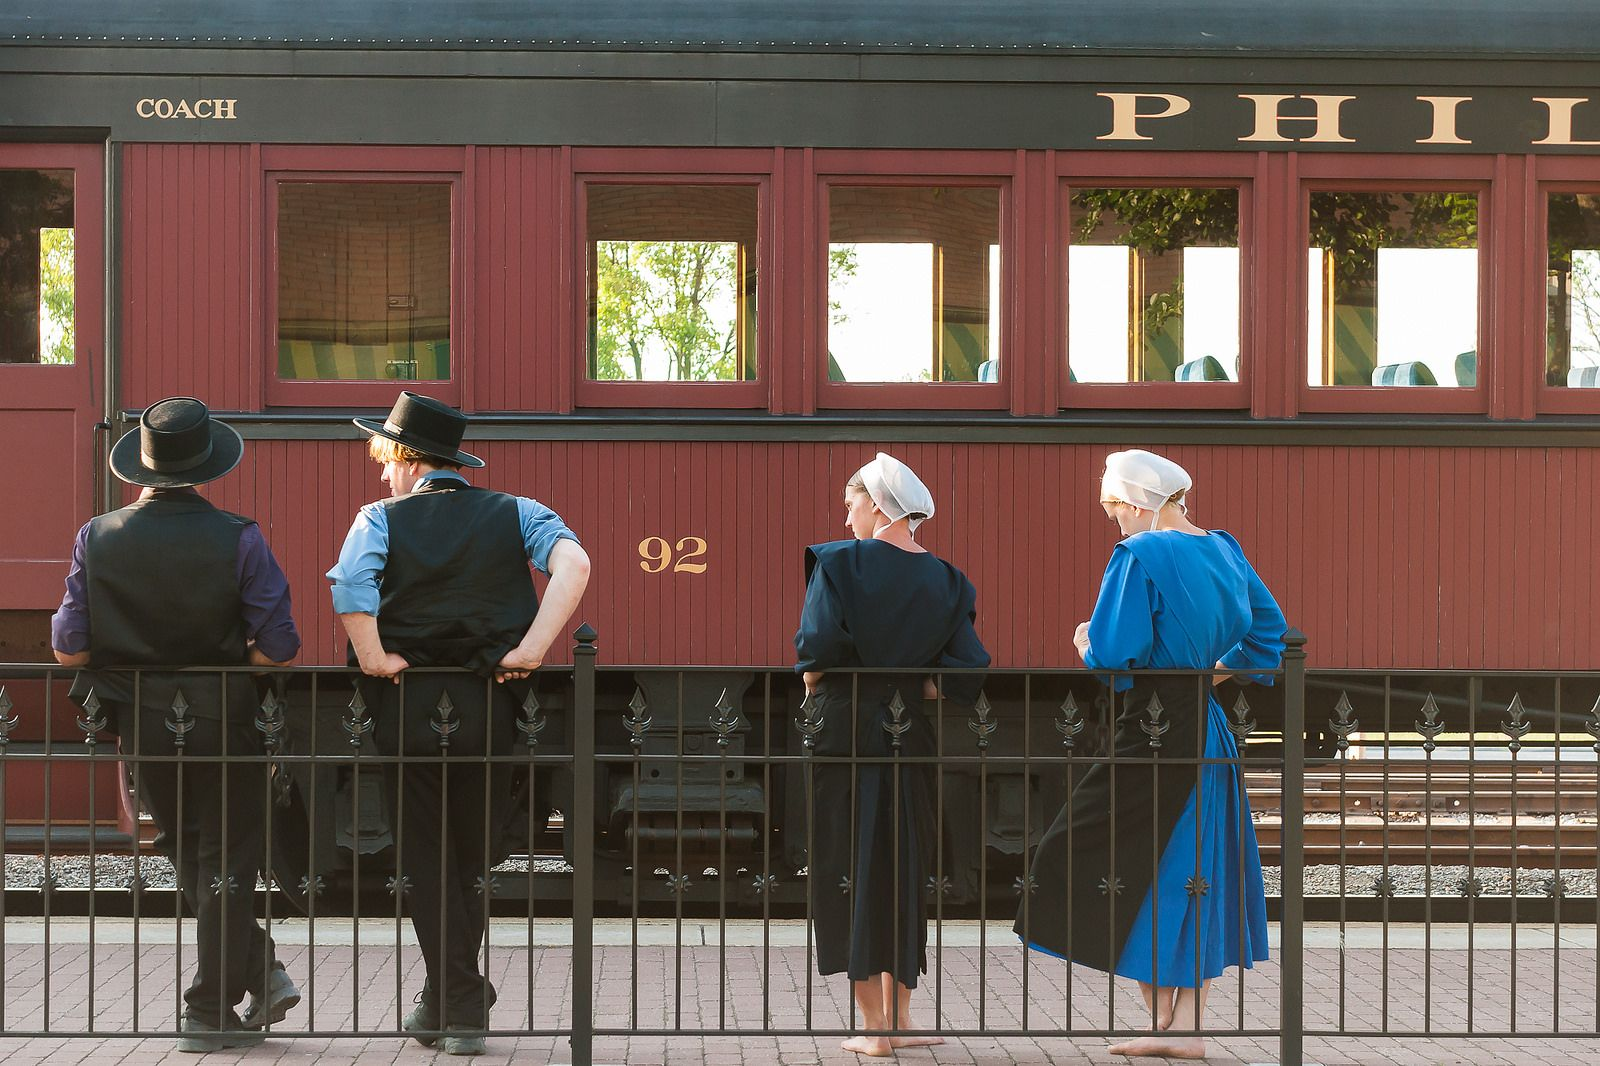 Amish population grows by 1,000 a year, despite Lancaster